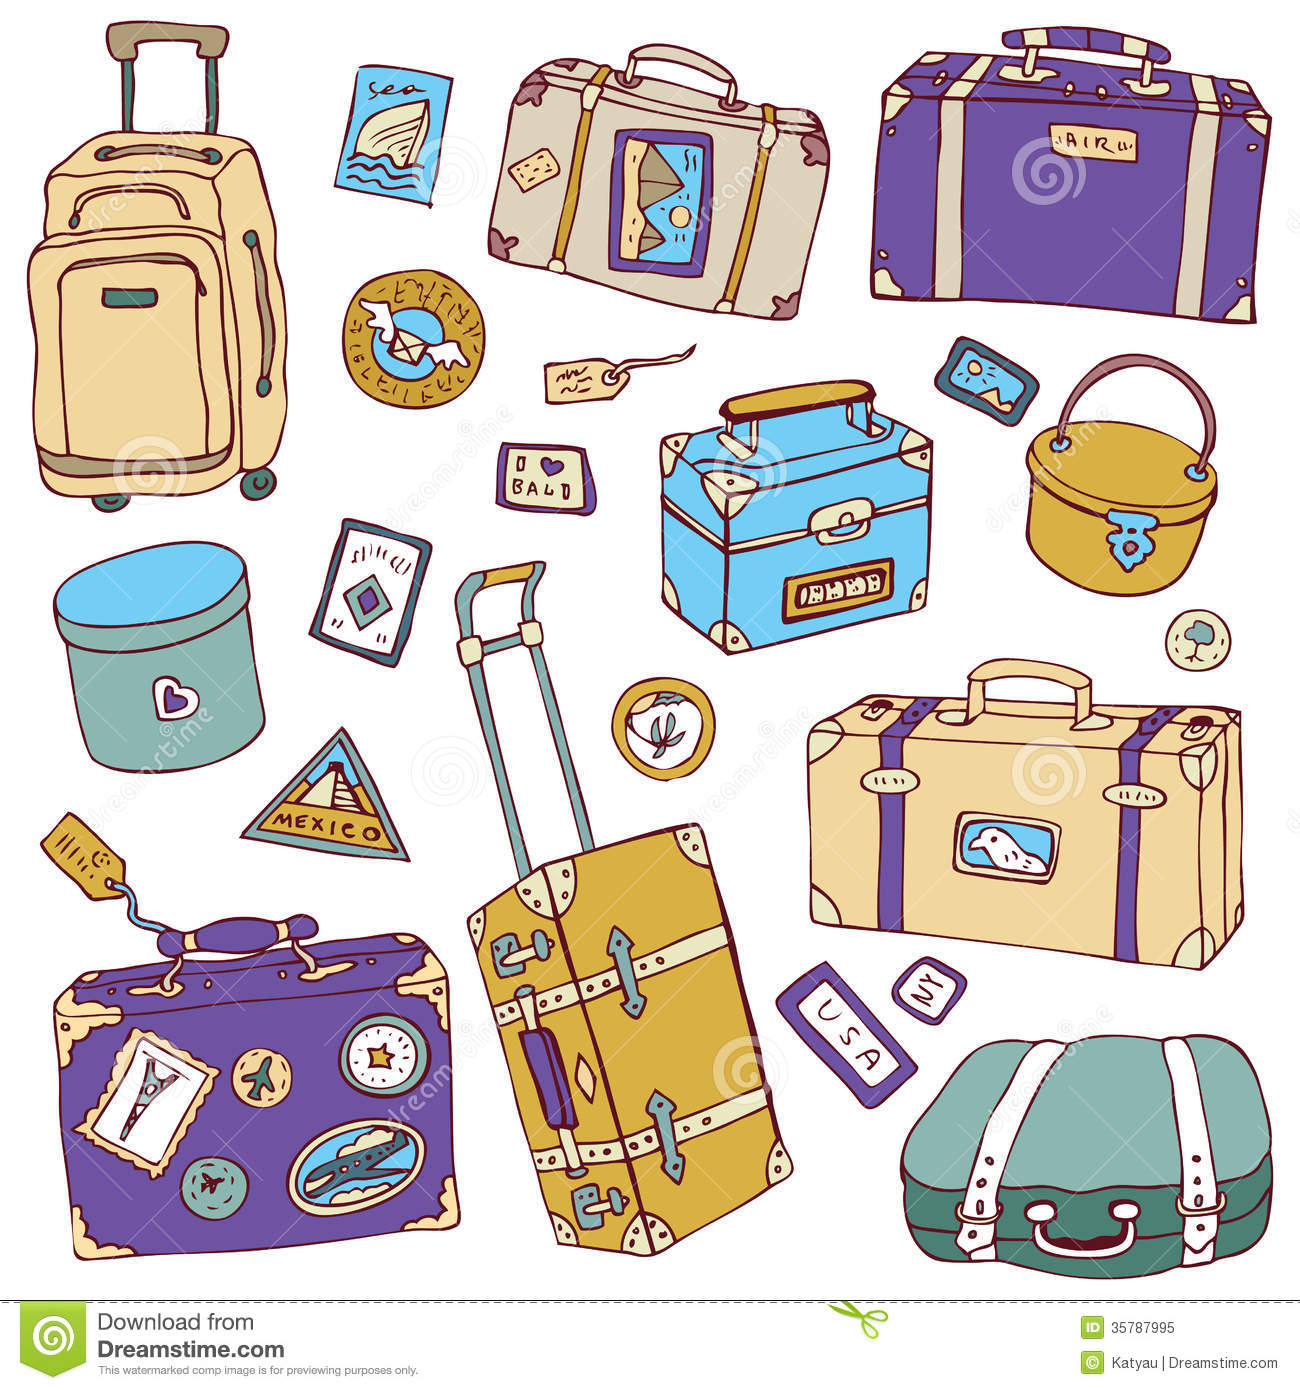 Vintage Suitcases Set Travel Vector Illustration Royalty Free Stock Photo Image 35787995